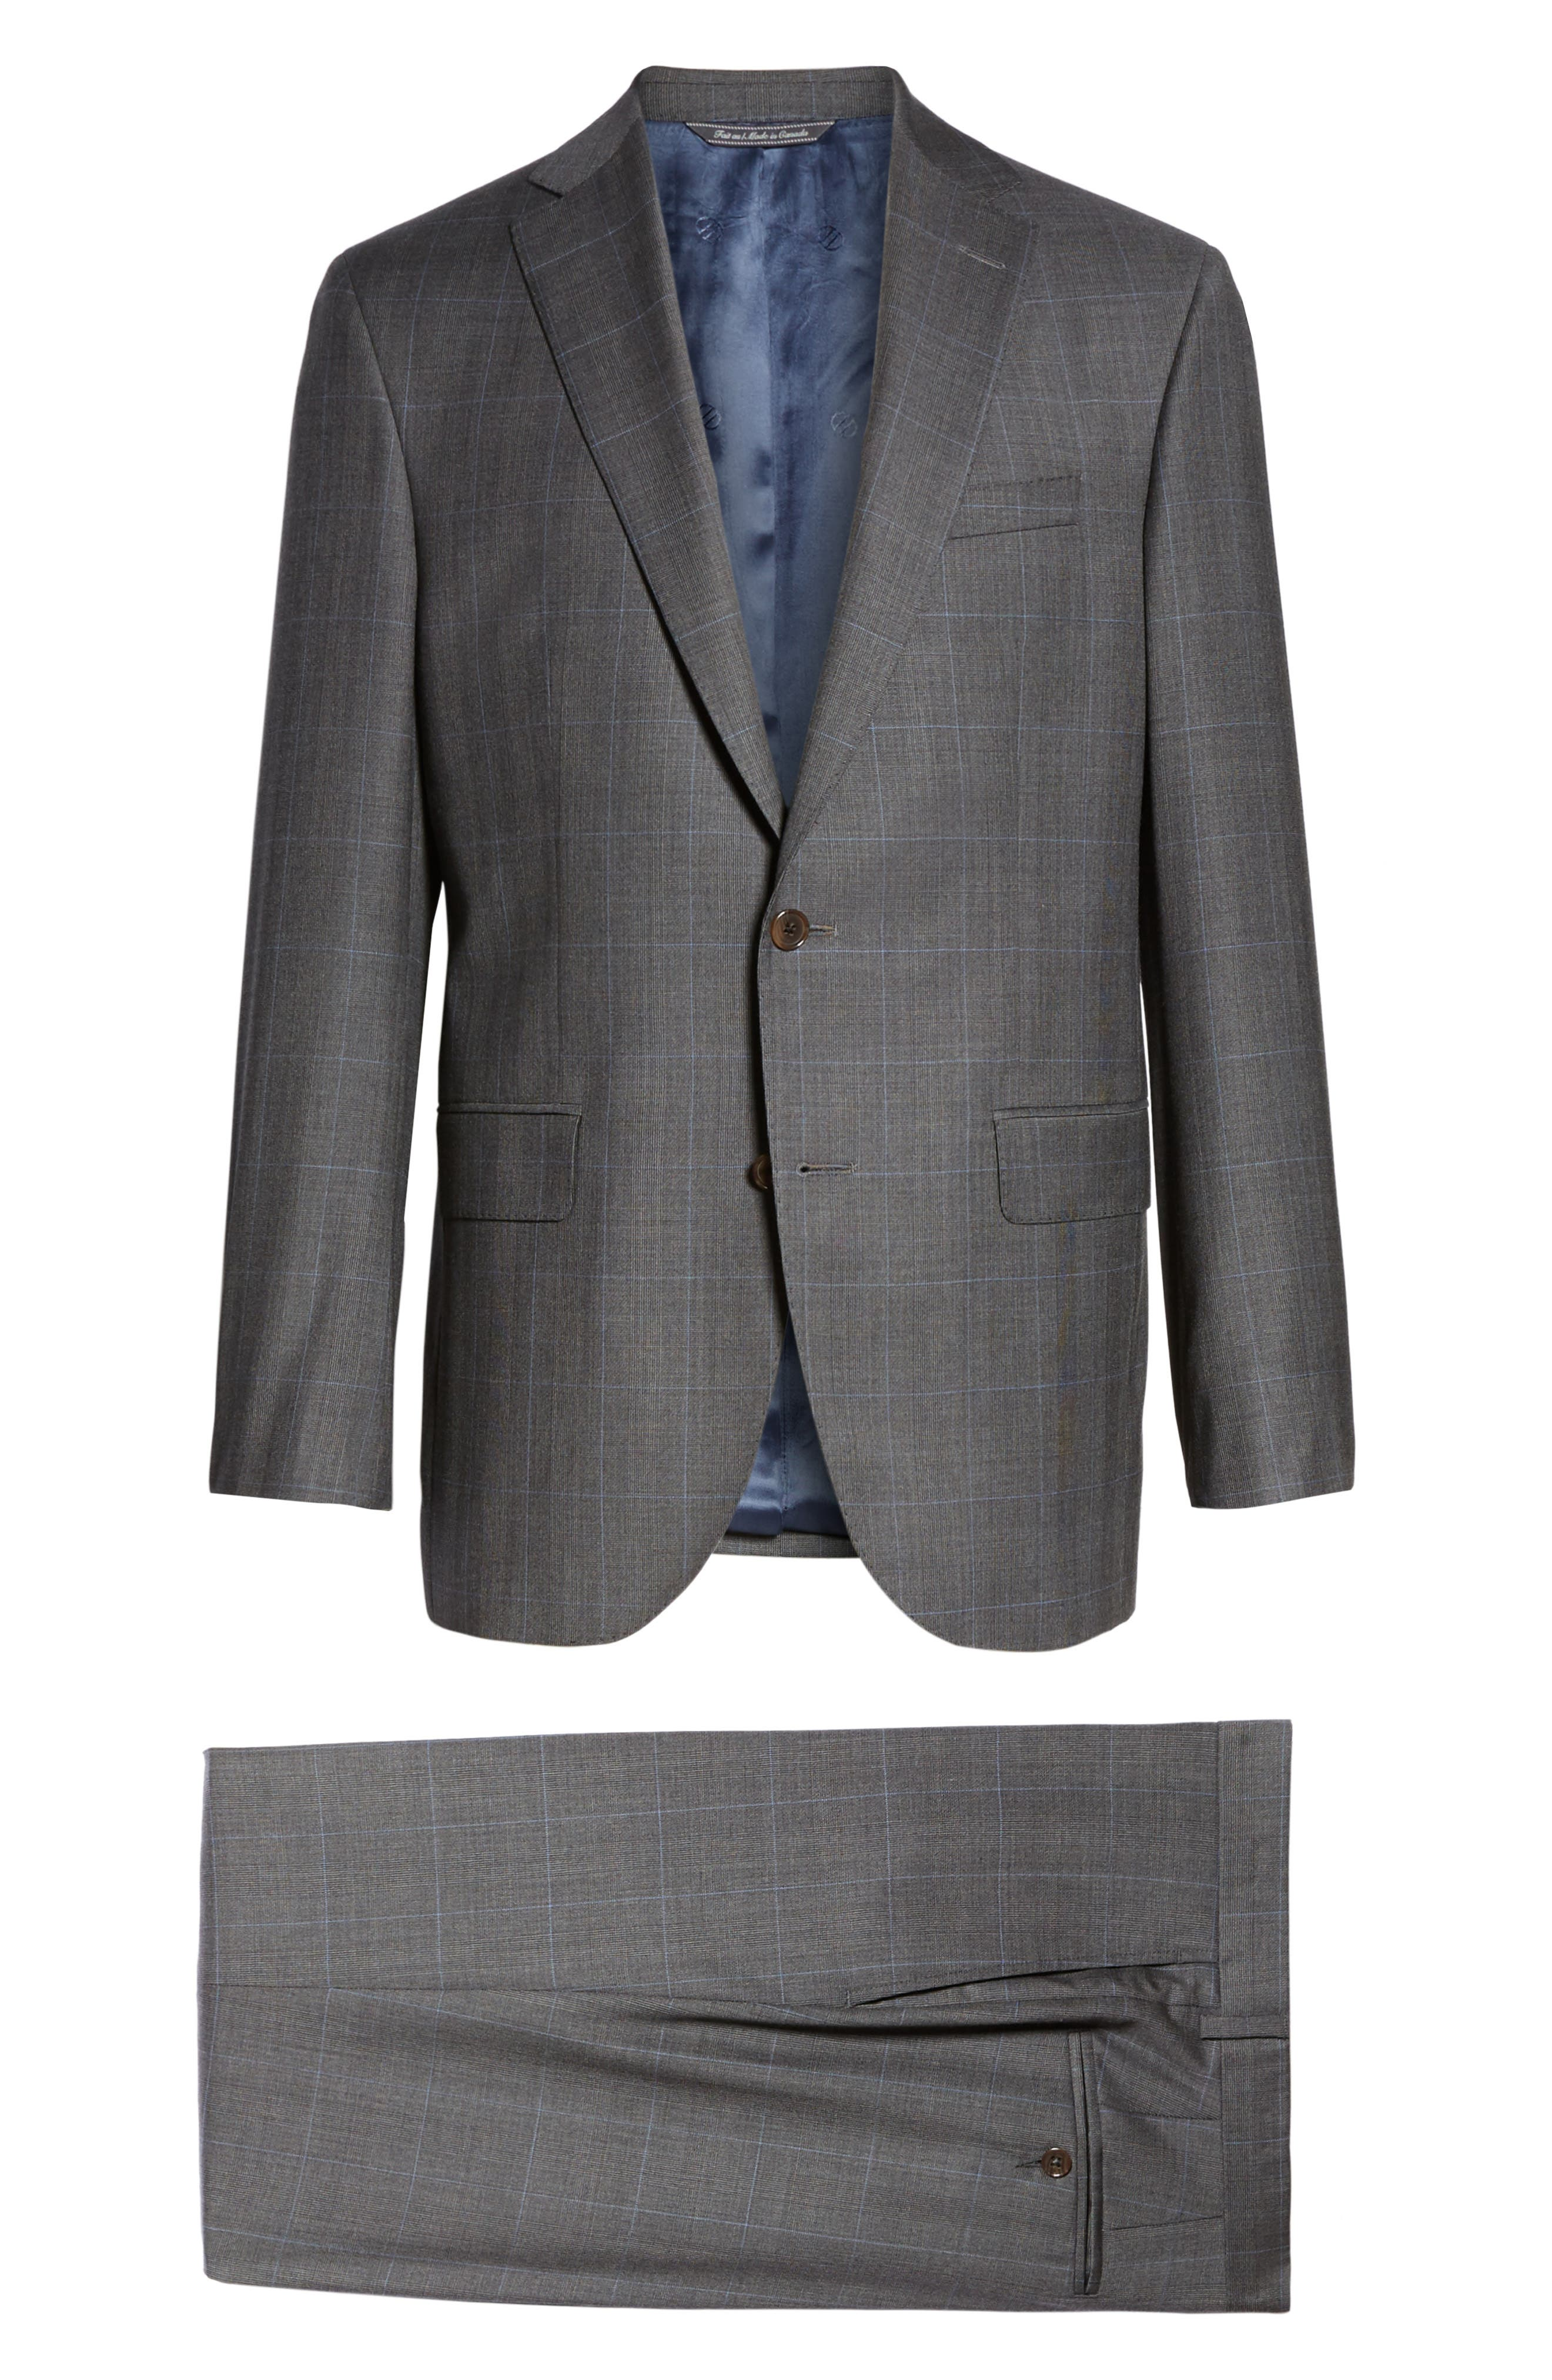 Ryan Classic Fit Solid Wool Suit,                             Alternate thumbnail 8, color,                             010